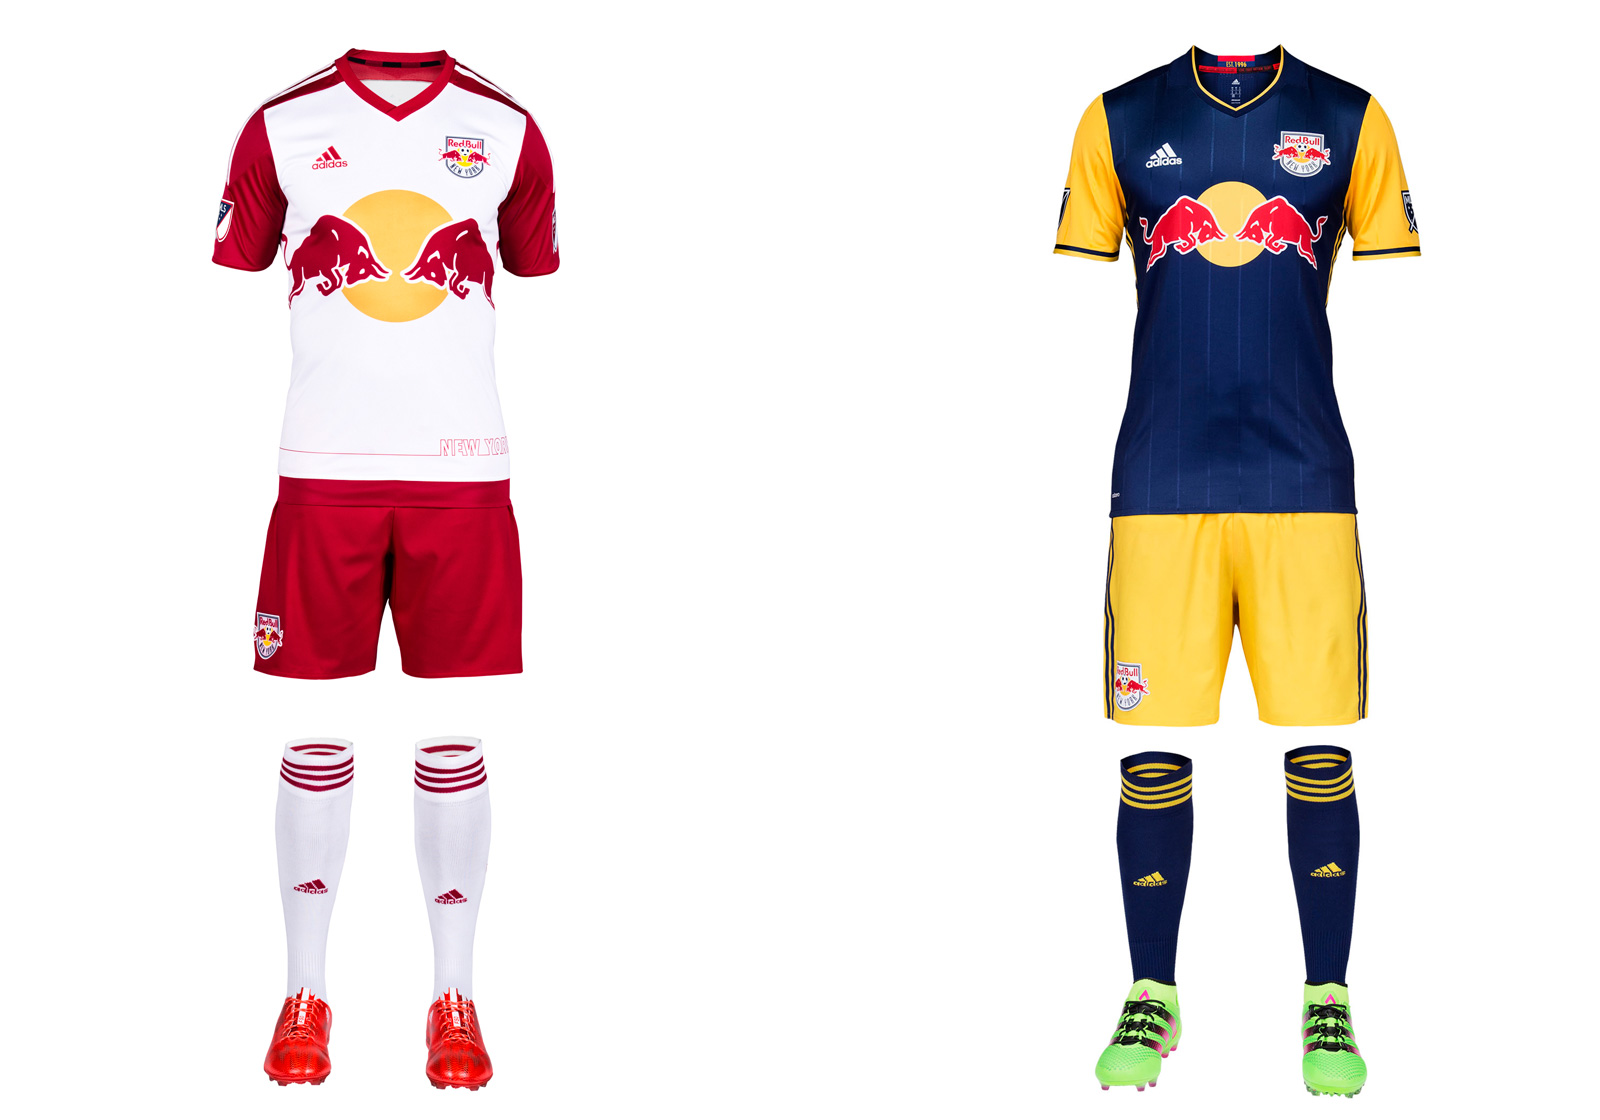 New York Red Bulls 2016 uniform